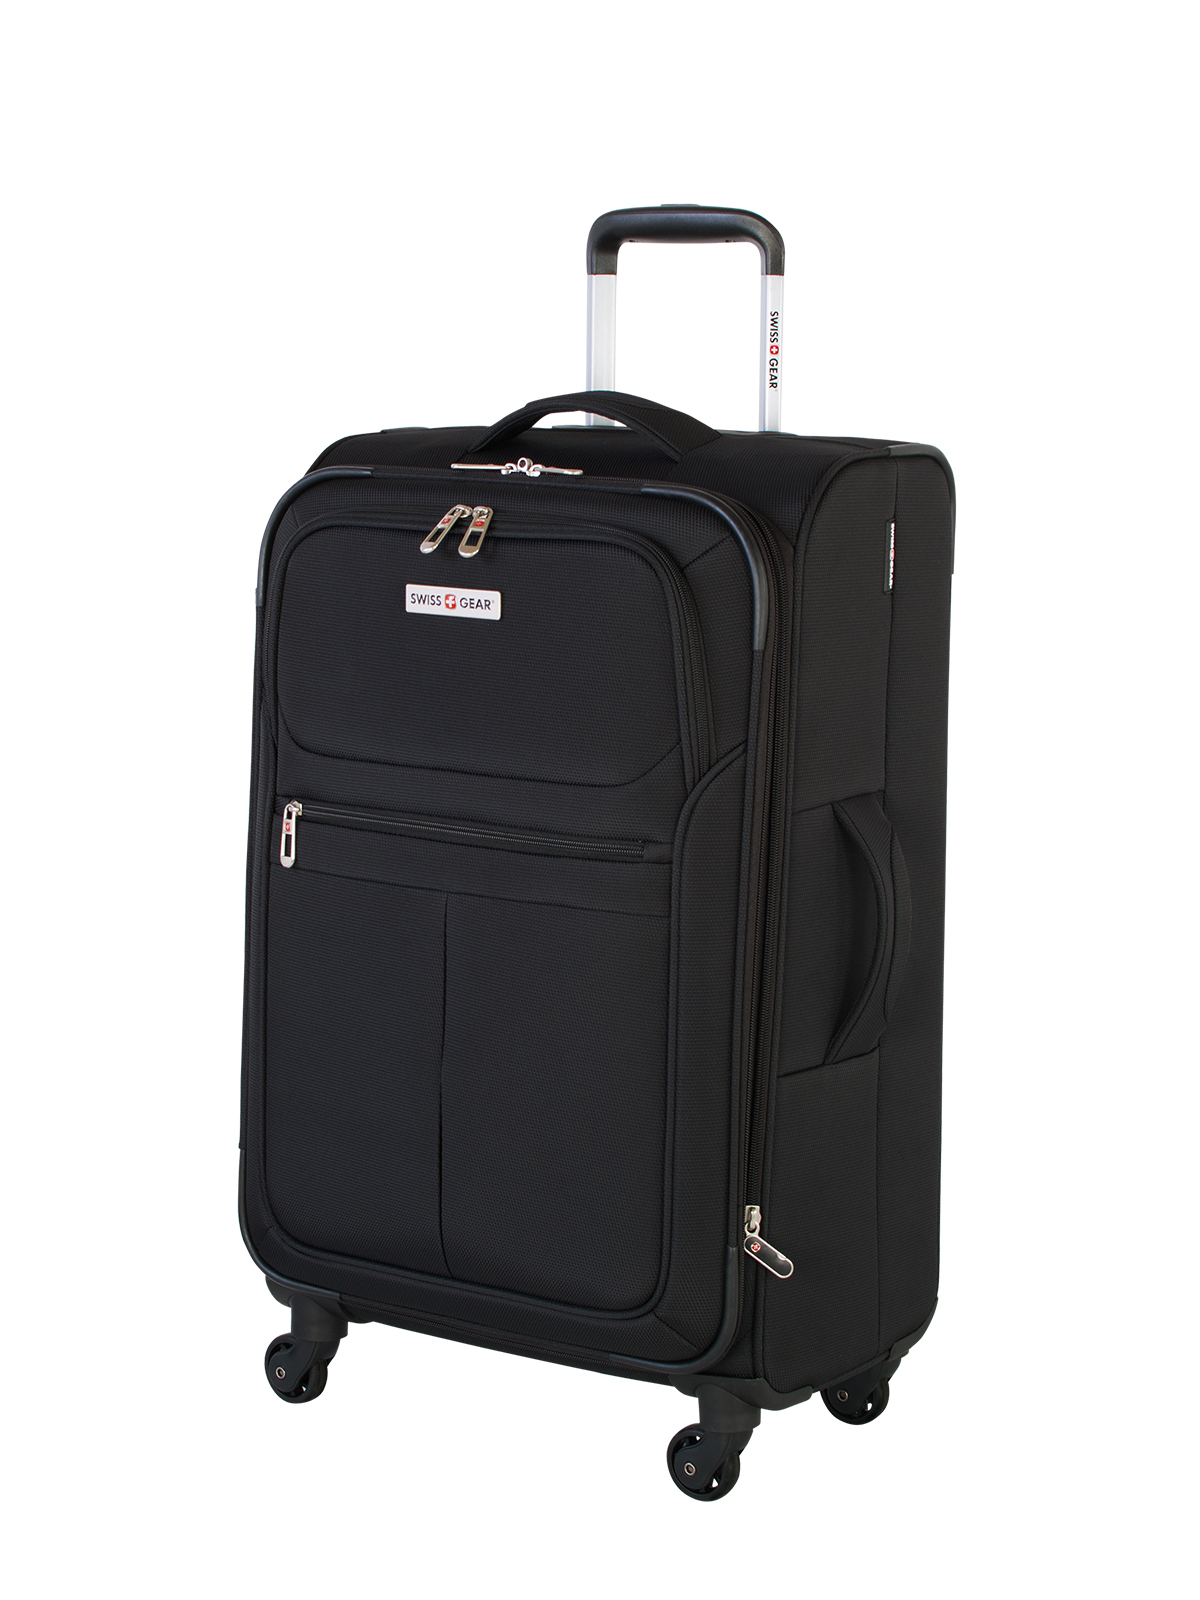 Swiss Gear Mendrisio Collection 24 Quot Expandable Upright